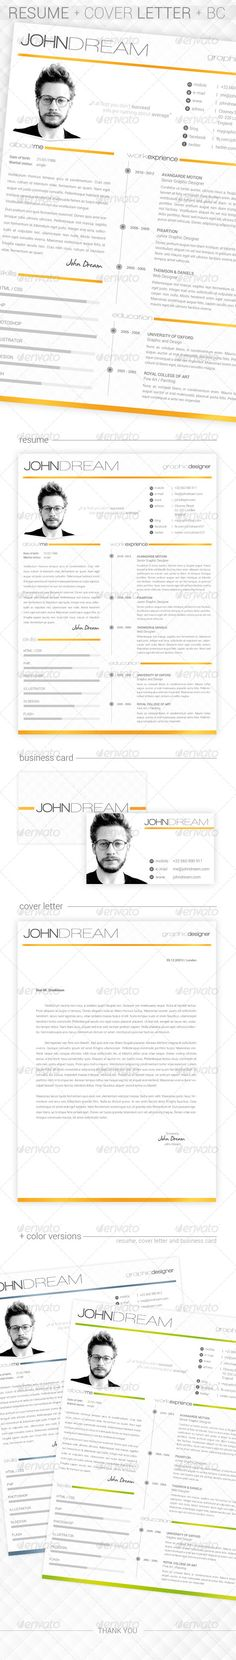 Resume Graphic Designer Martijn Mandemakers | My work | Pinterest ...